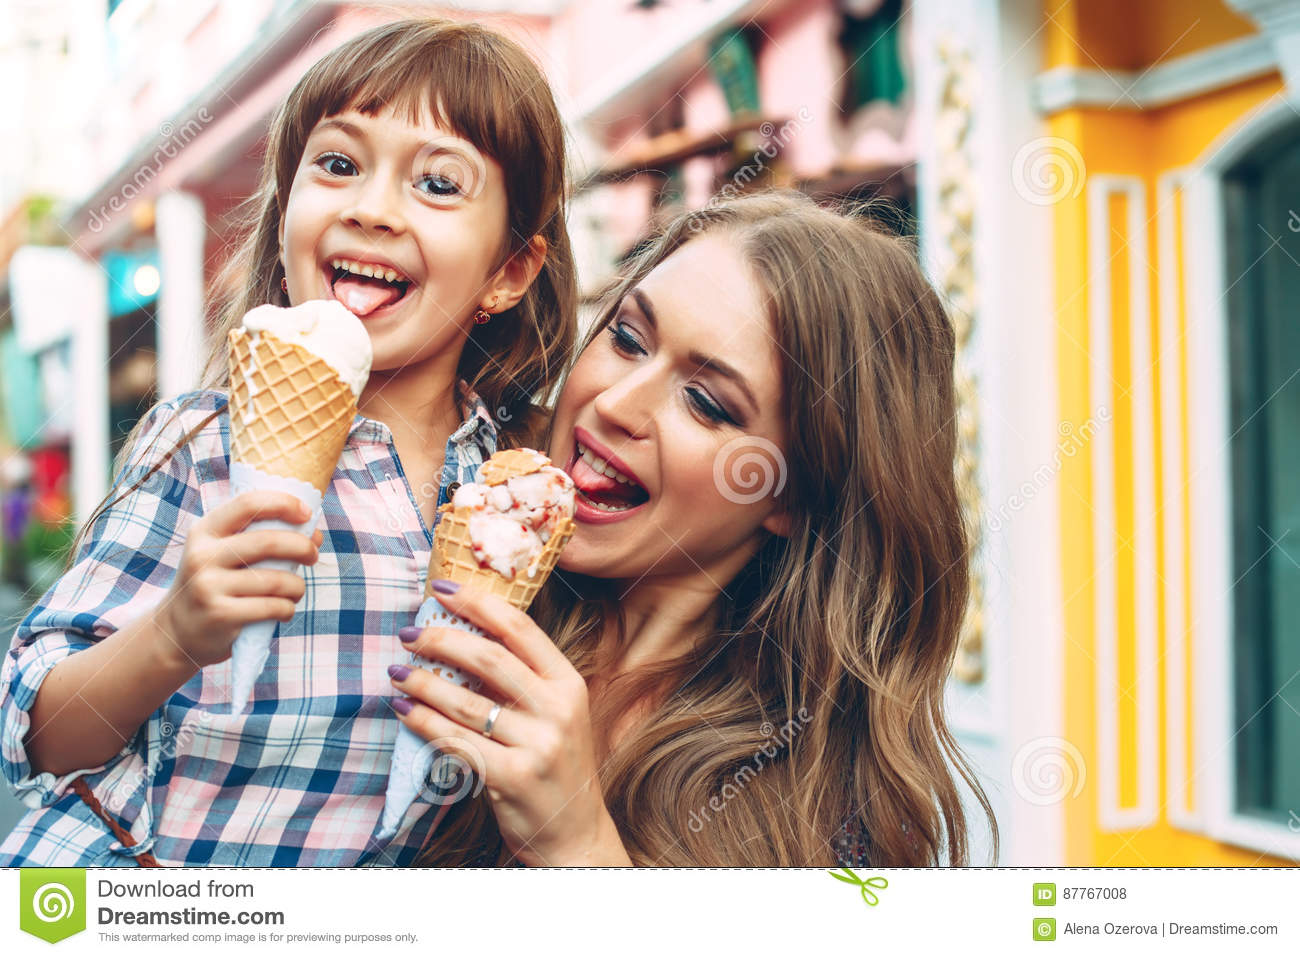 Mom with child eating ice cream in city street